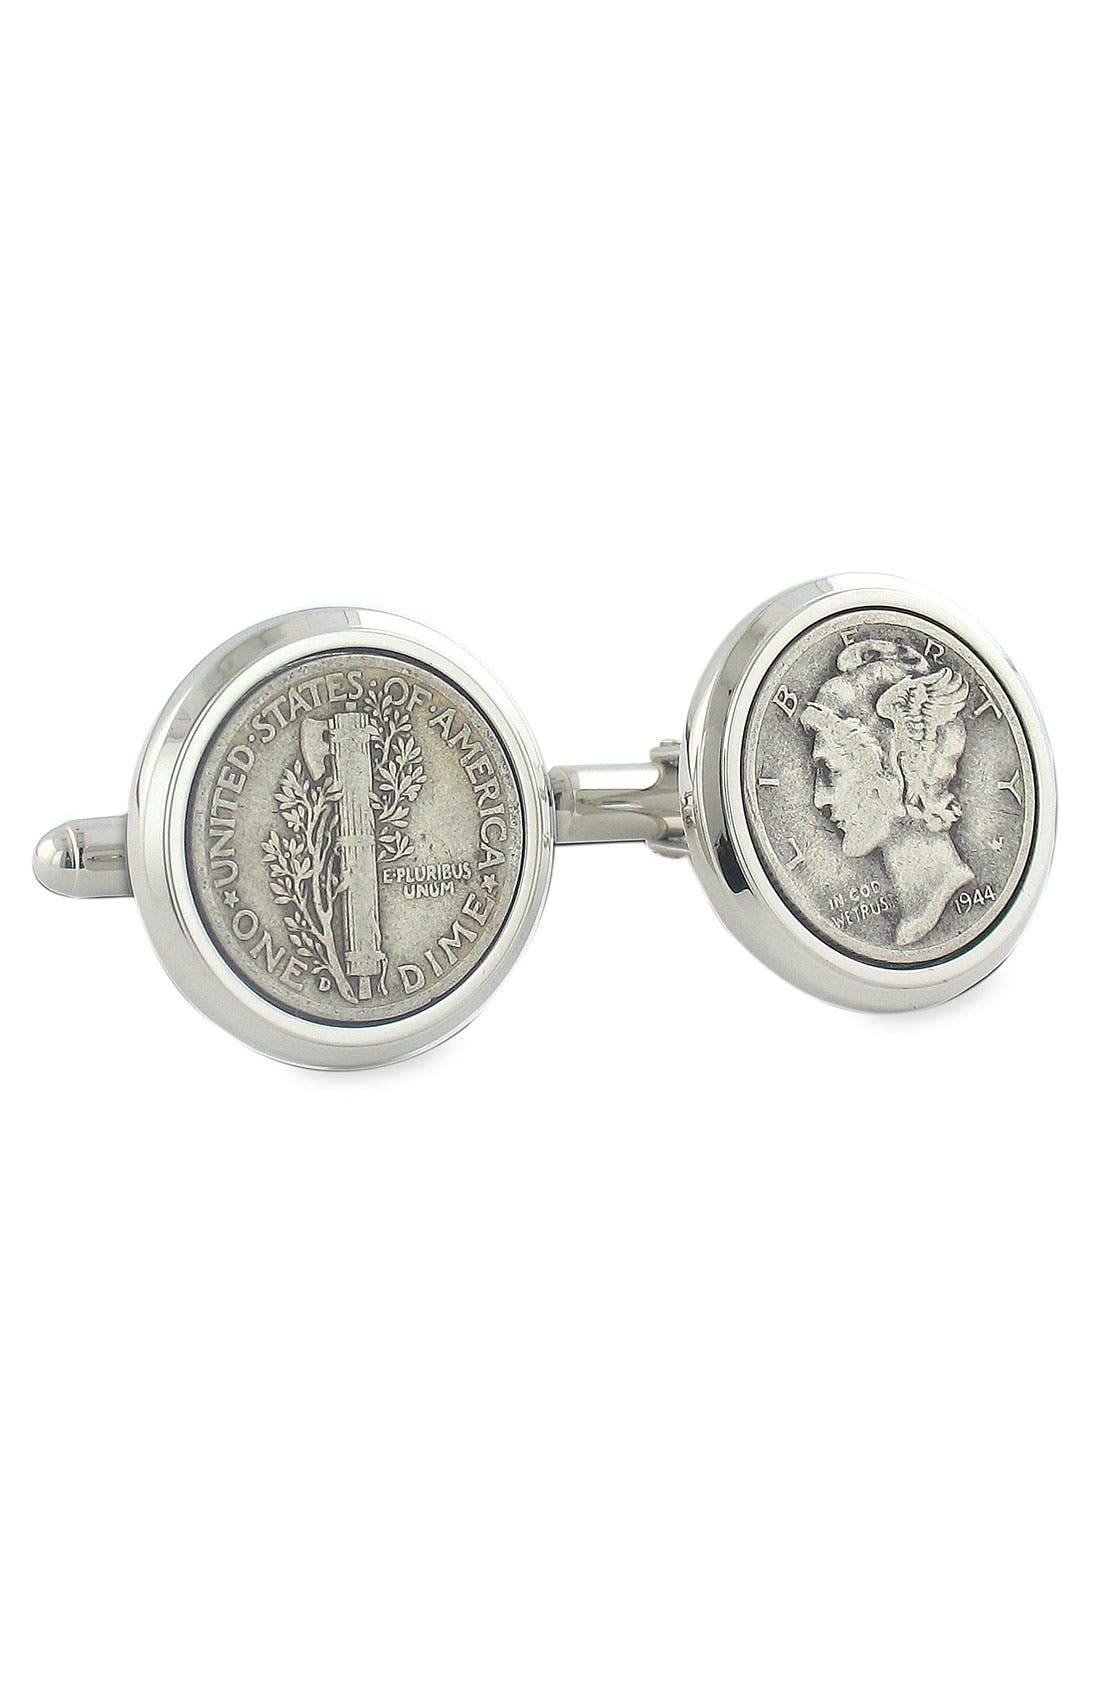 Mercury Dime Cuff Links,                             Main thumbnail 1, color,                             Silver Dime